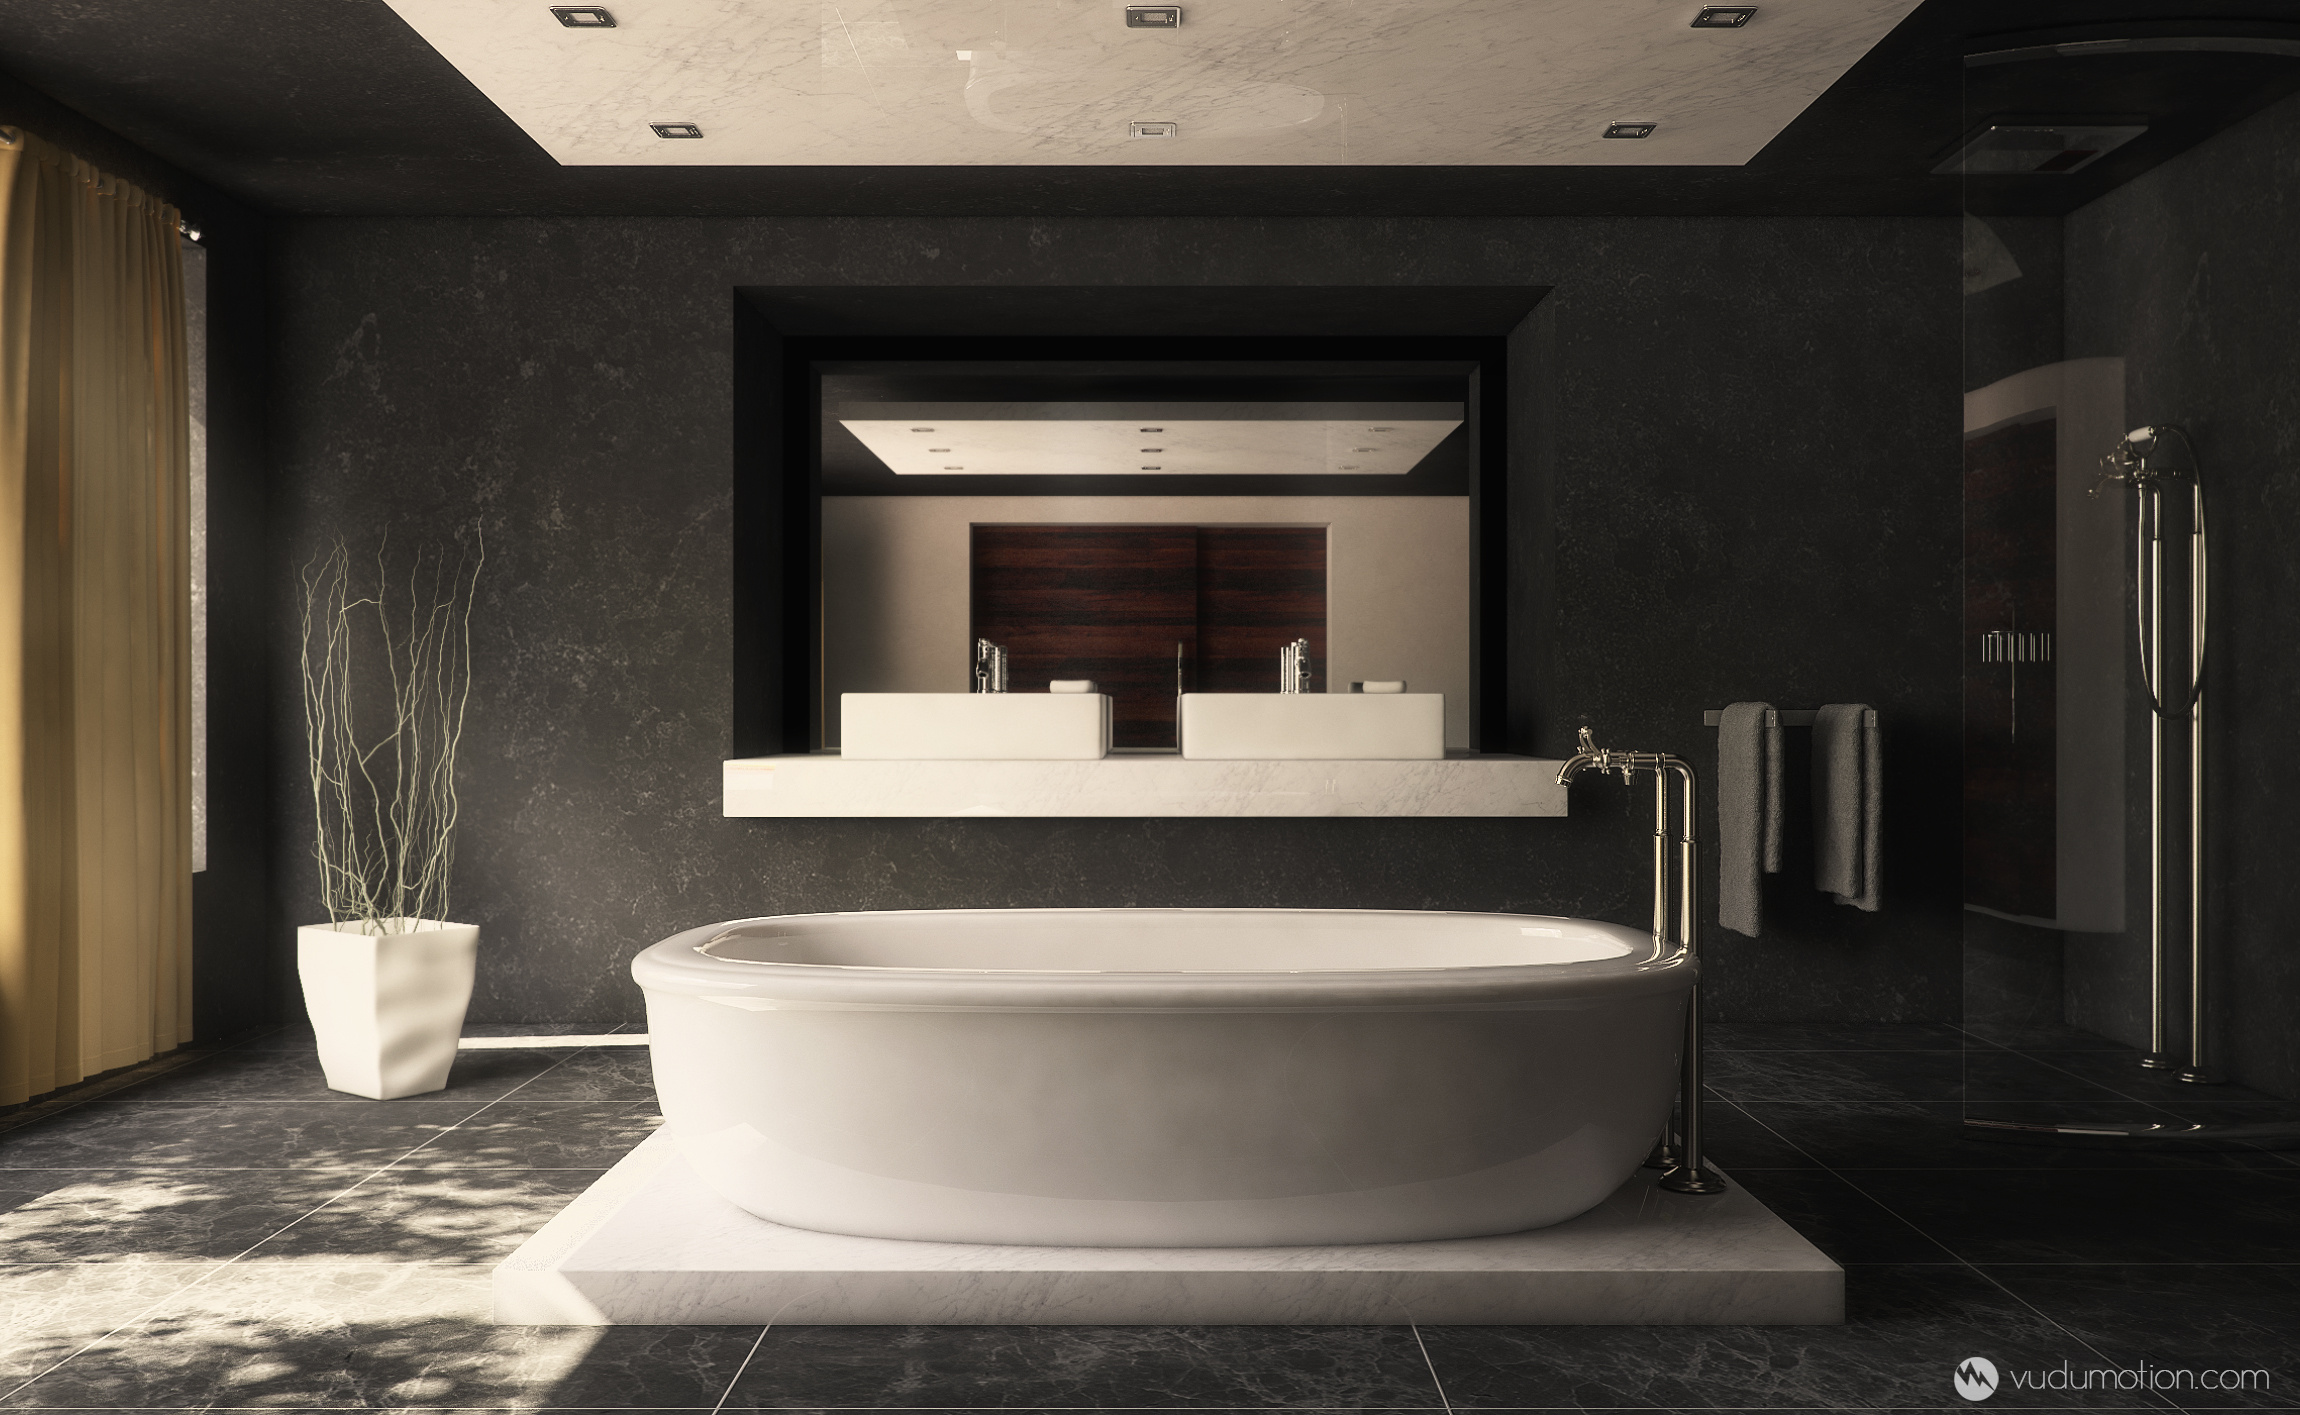 modern minimalism best about on pinterest look all contemporary is although this expensive victorianplumb bathrooms it bathroom might images are simple